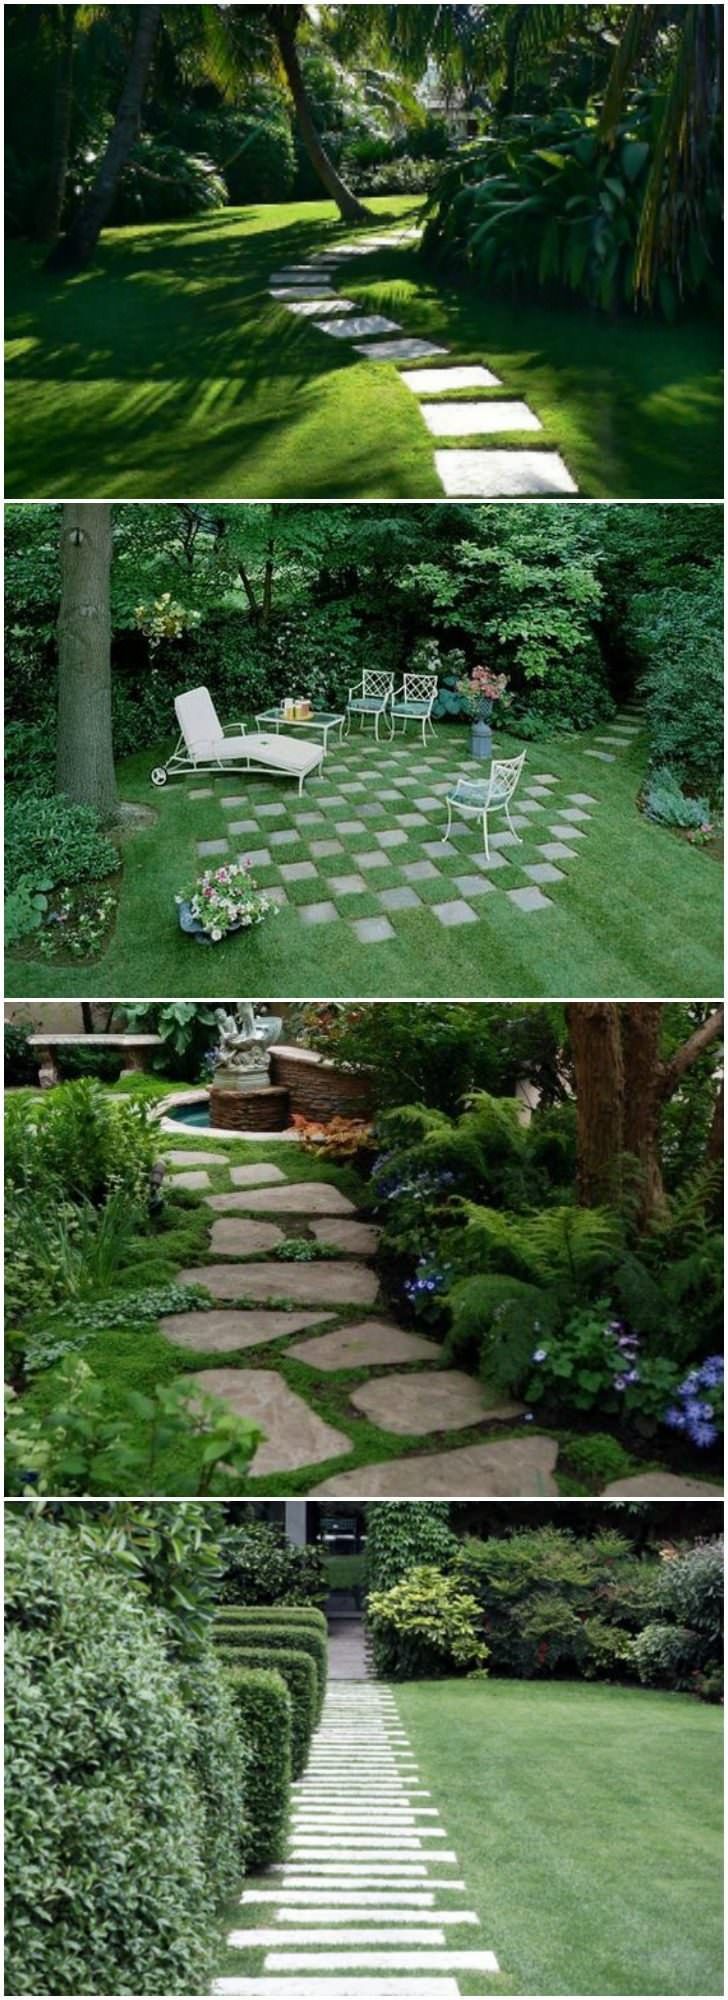 11 Amazing Lawn Landscaping Design Ideas | Landscaping design, Lawn ...